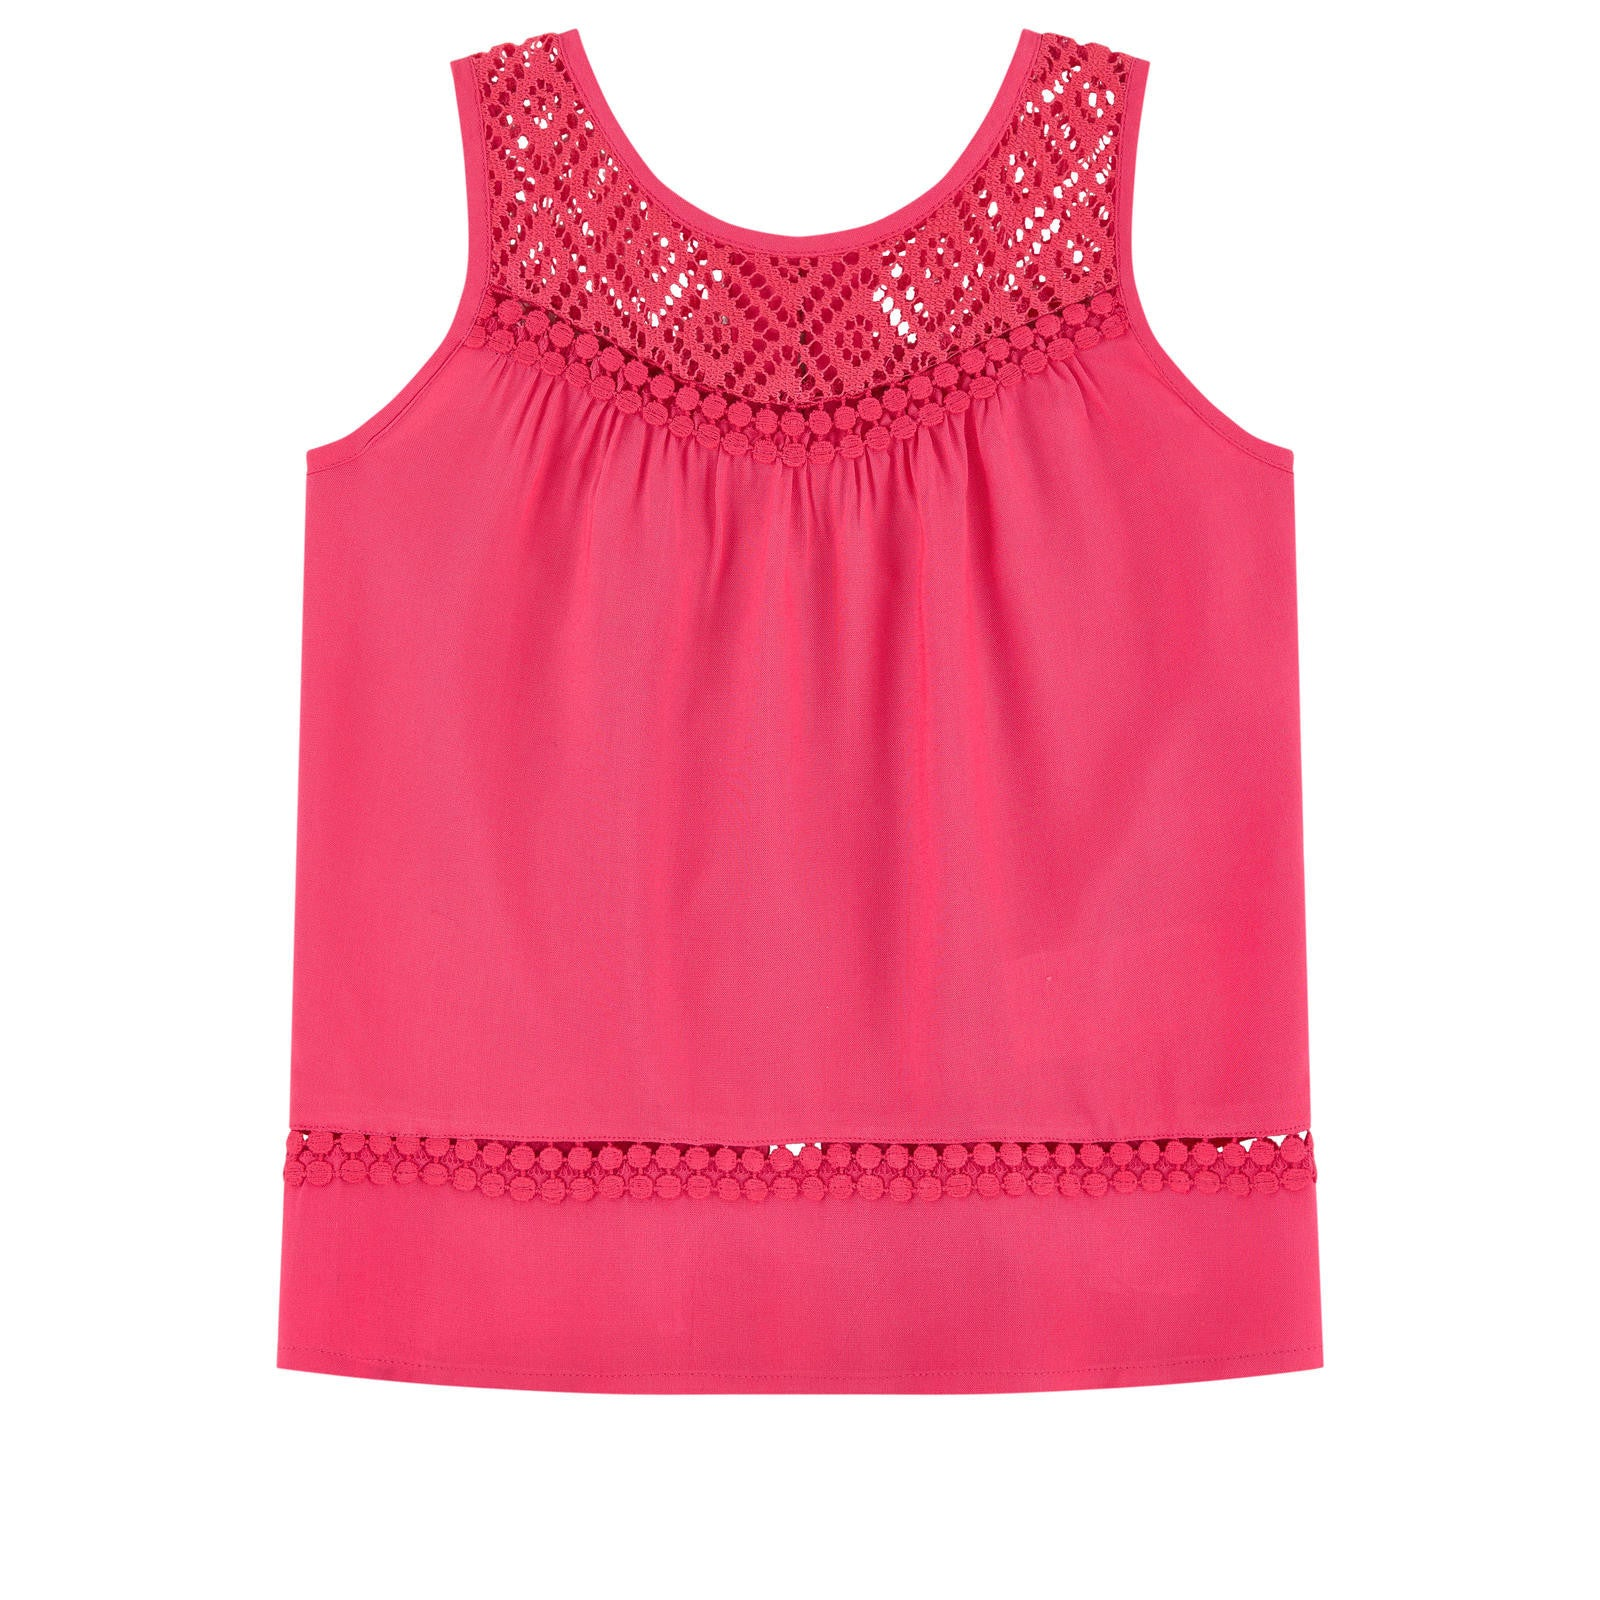 3 Pommes Sleeveless Top